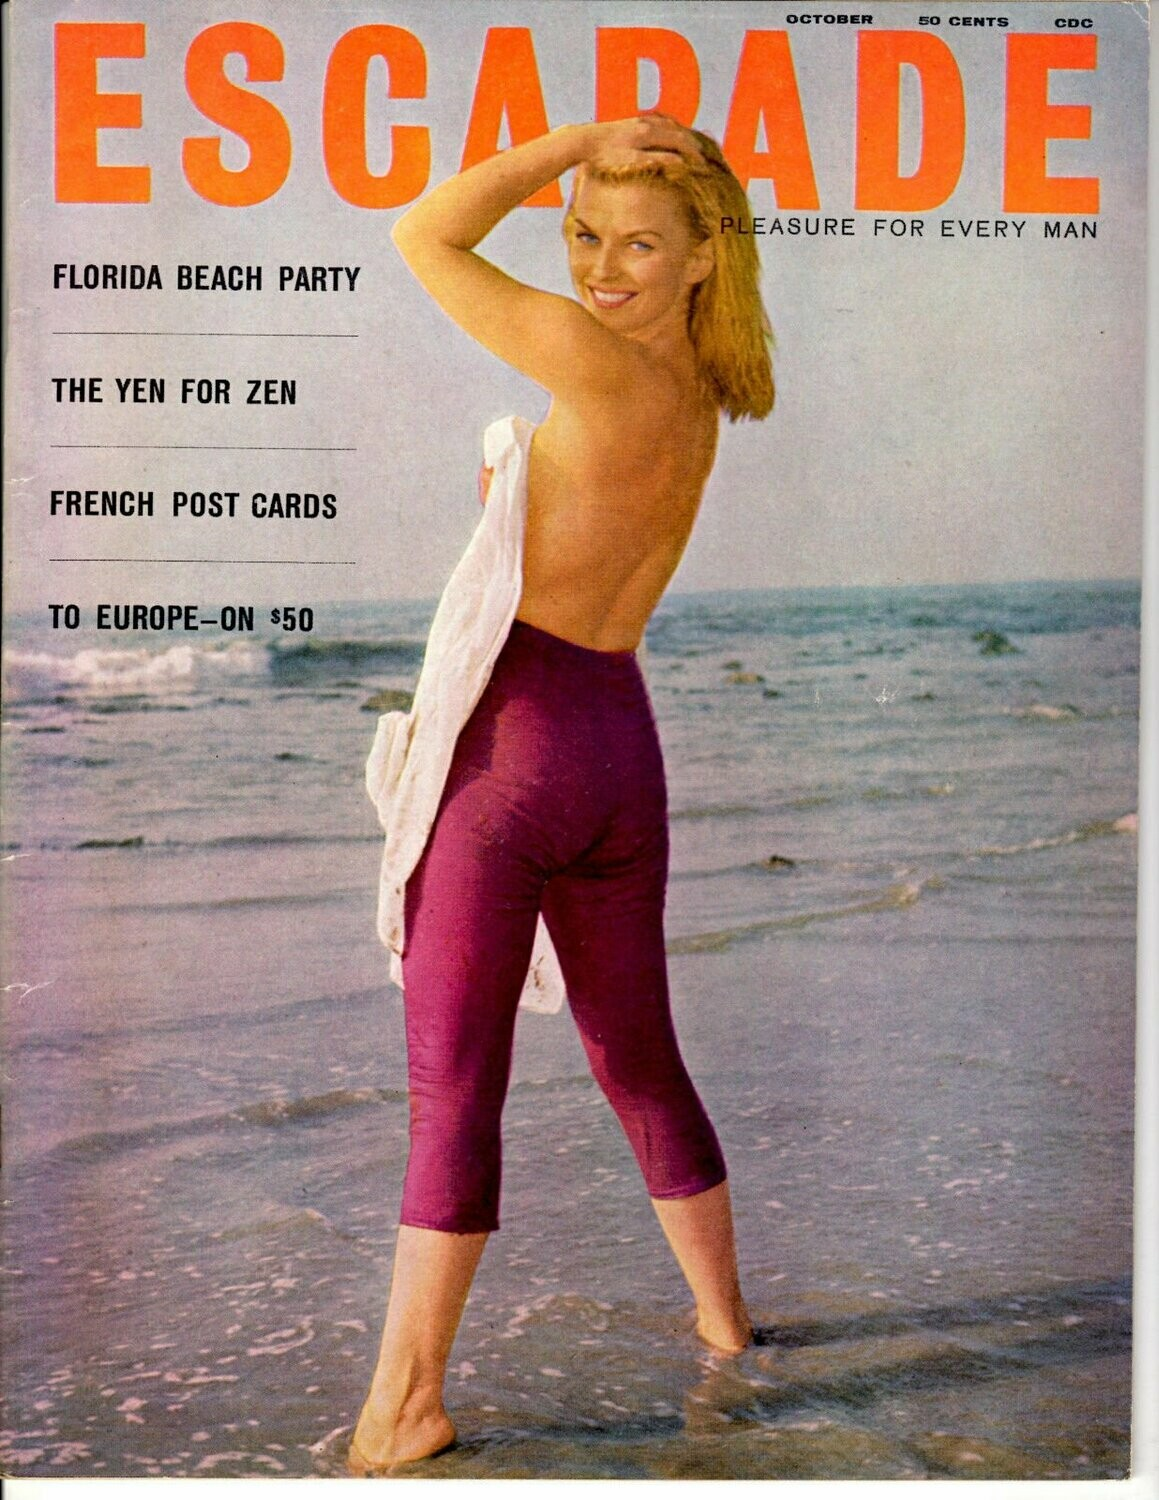 Vintage Escapade Magazine October 1960